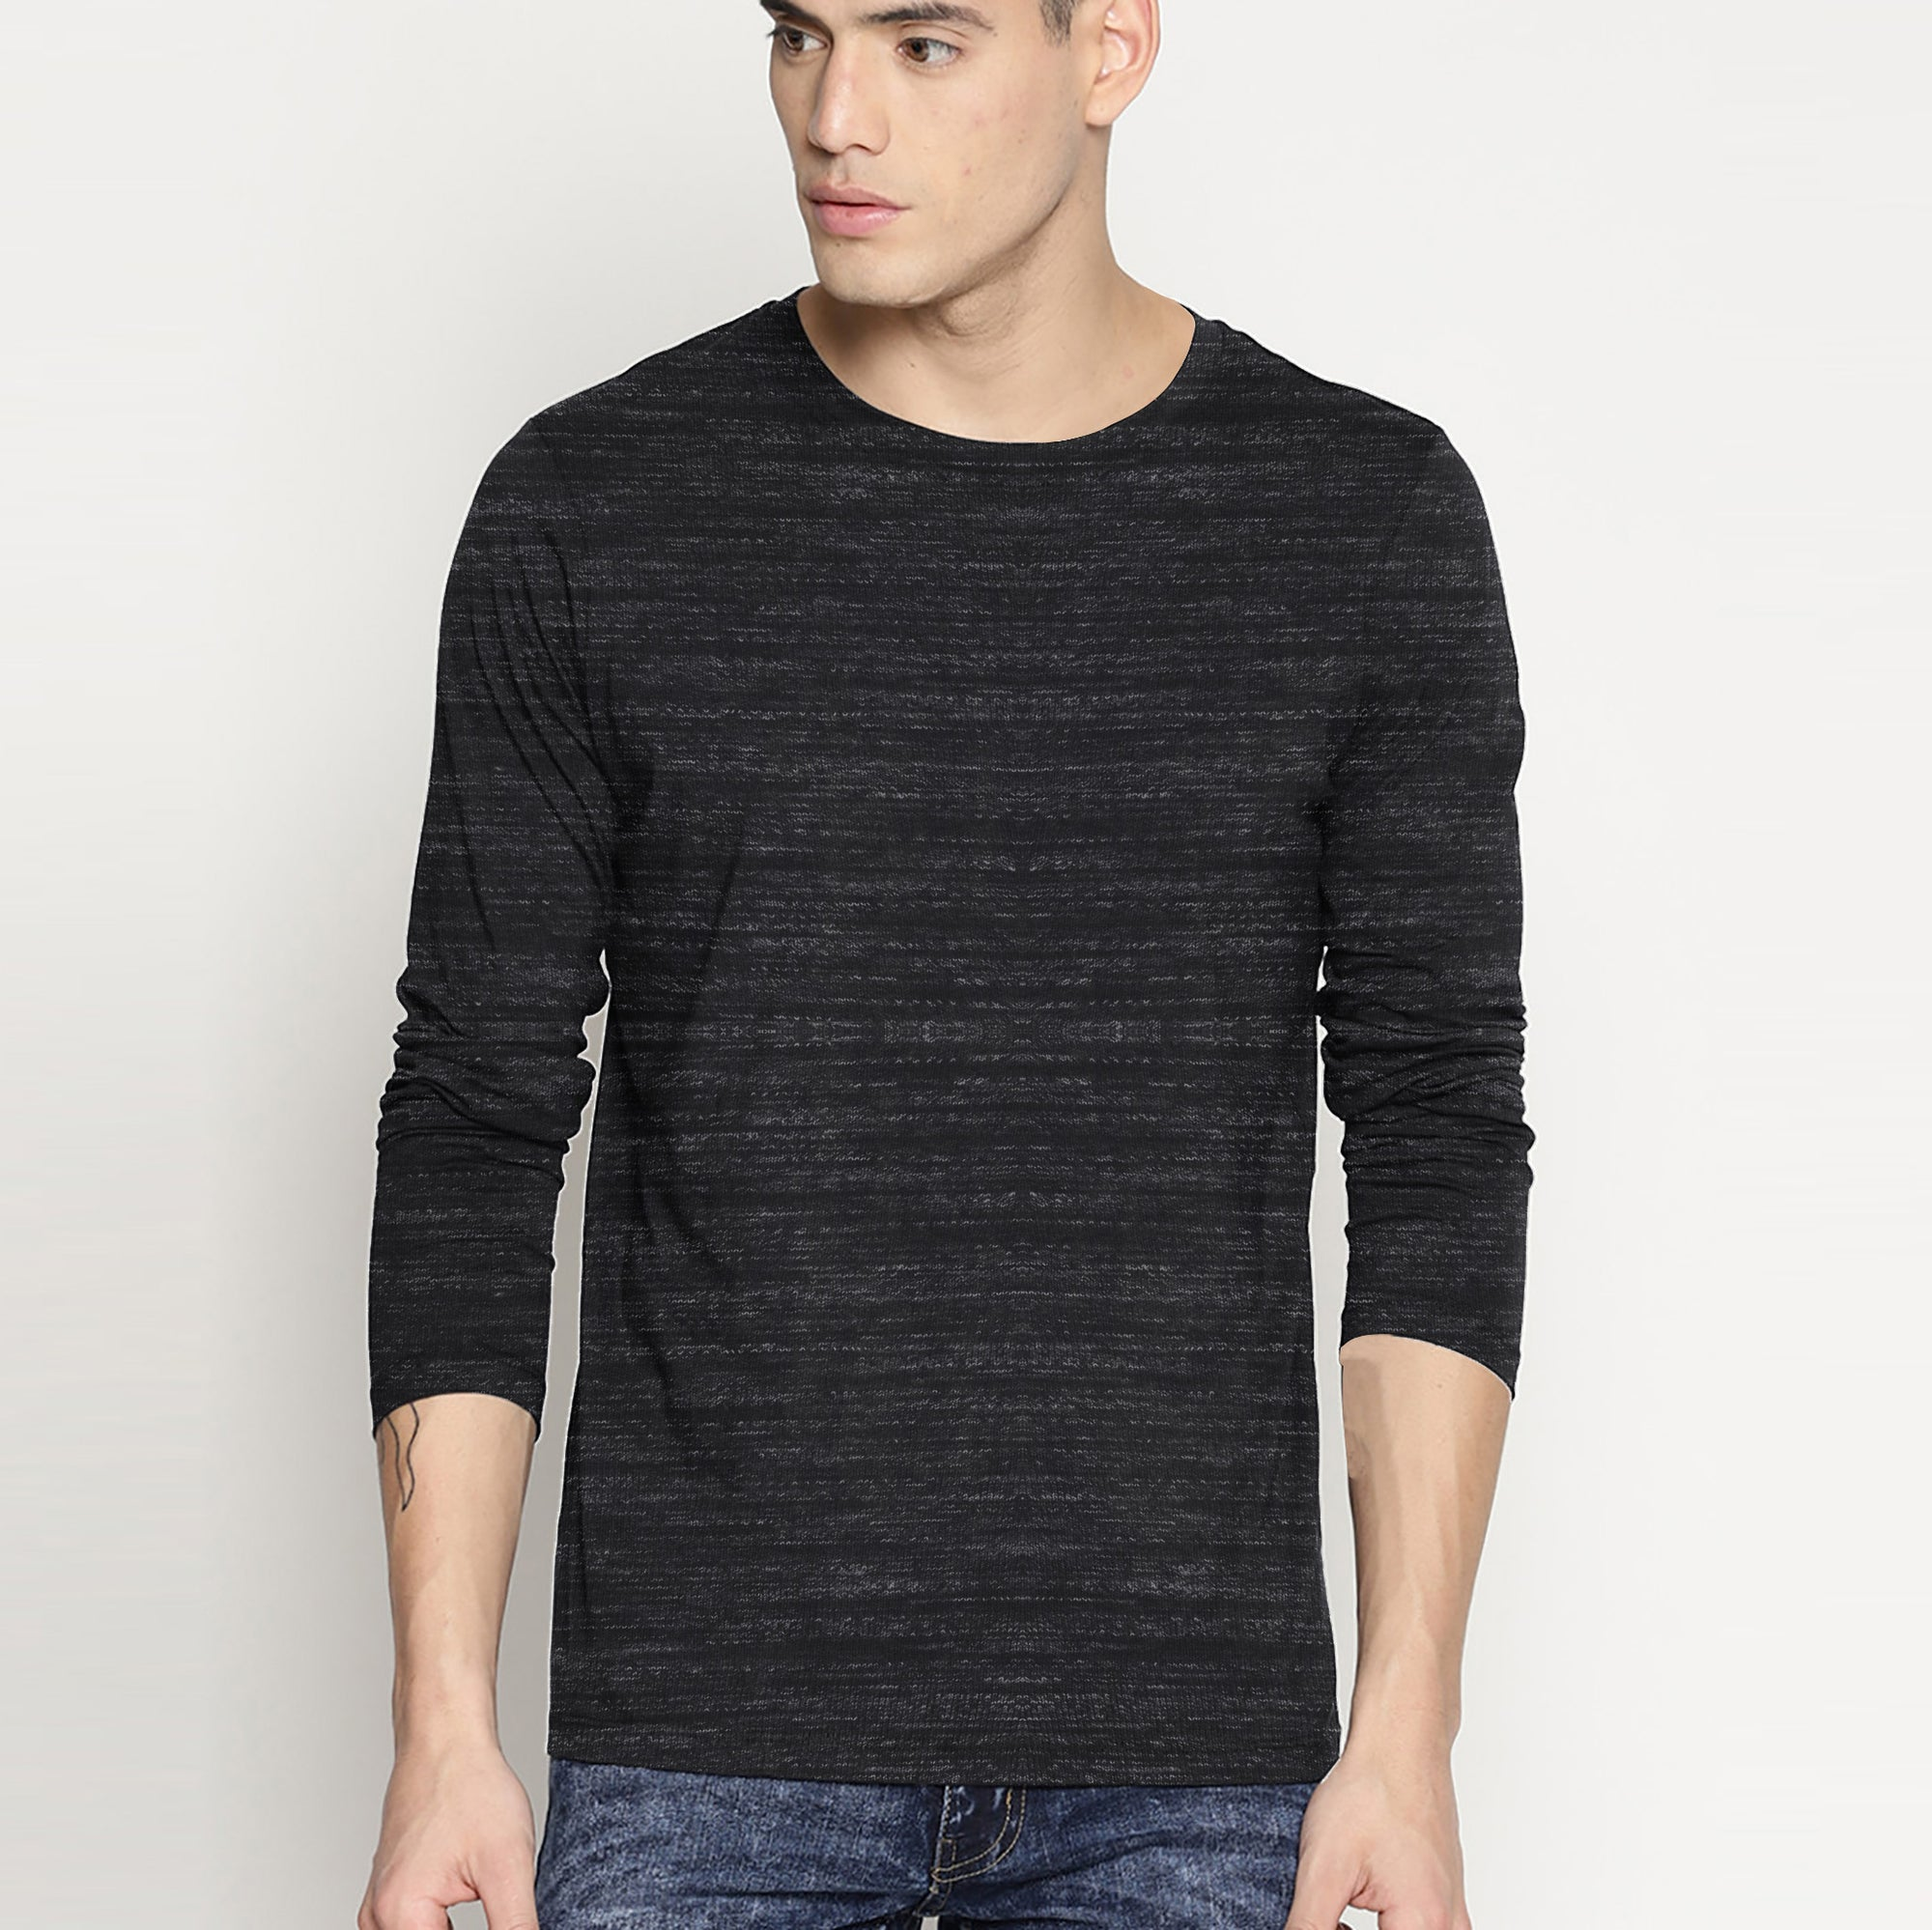 Beverly Hills Single Jersey Long Sleeve Tee Shirt For Men-Charcoal With Melange-SP404